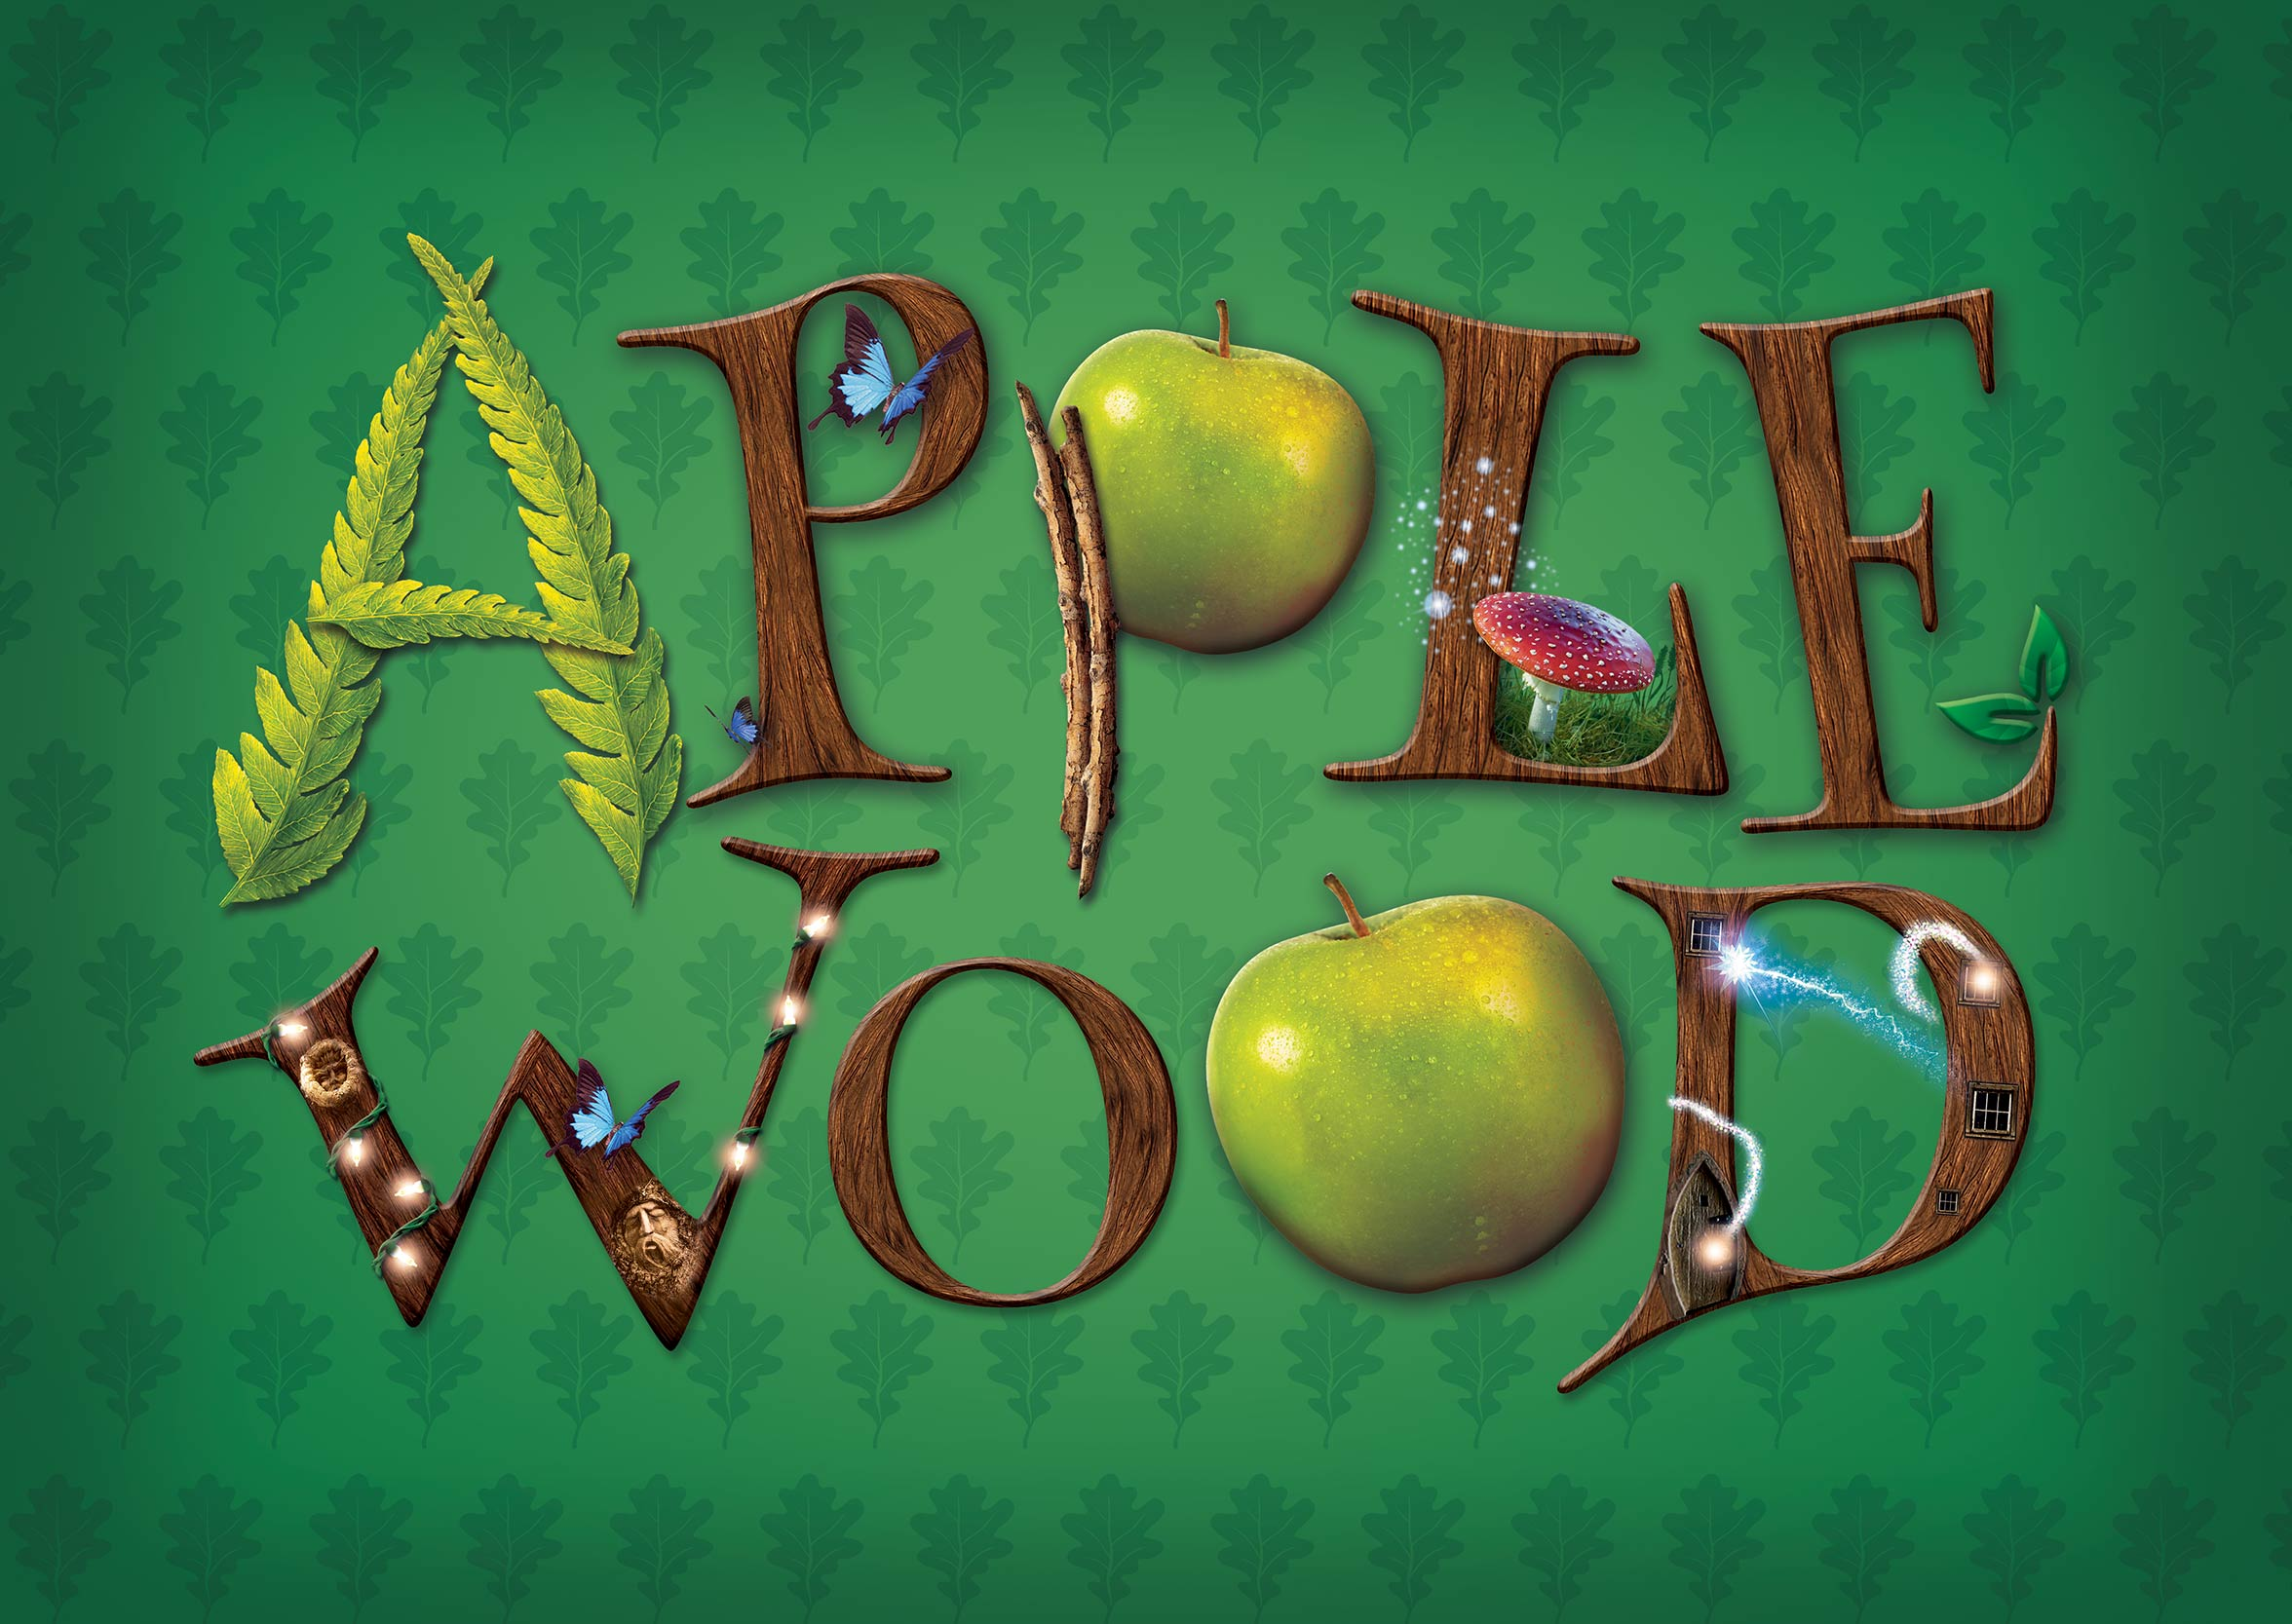 Enchanted_Village_Apple_Wood.jpg